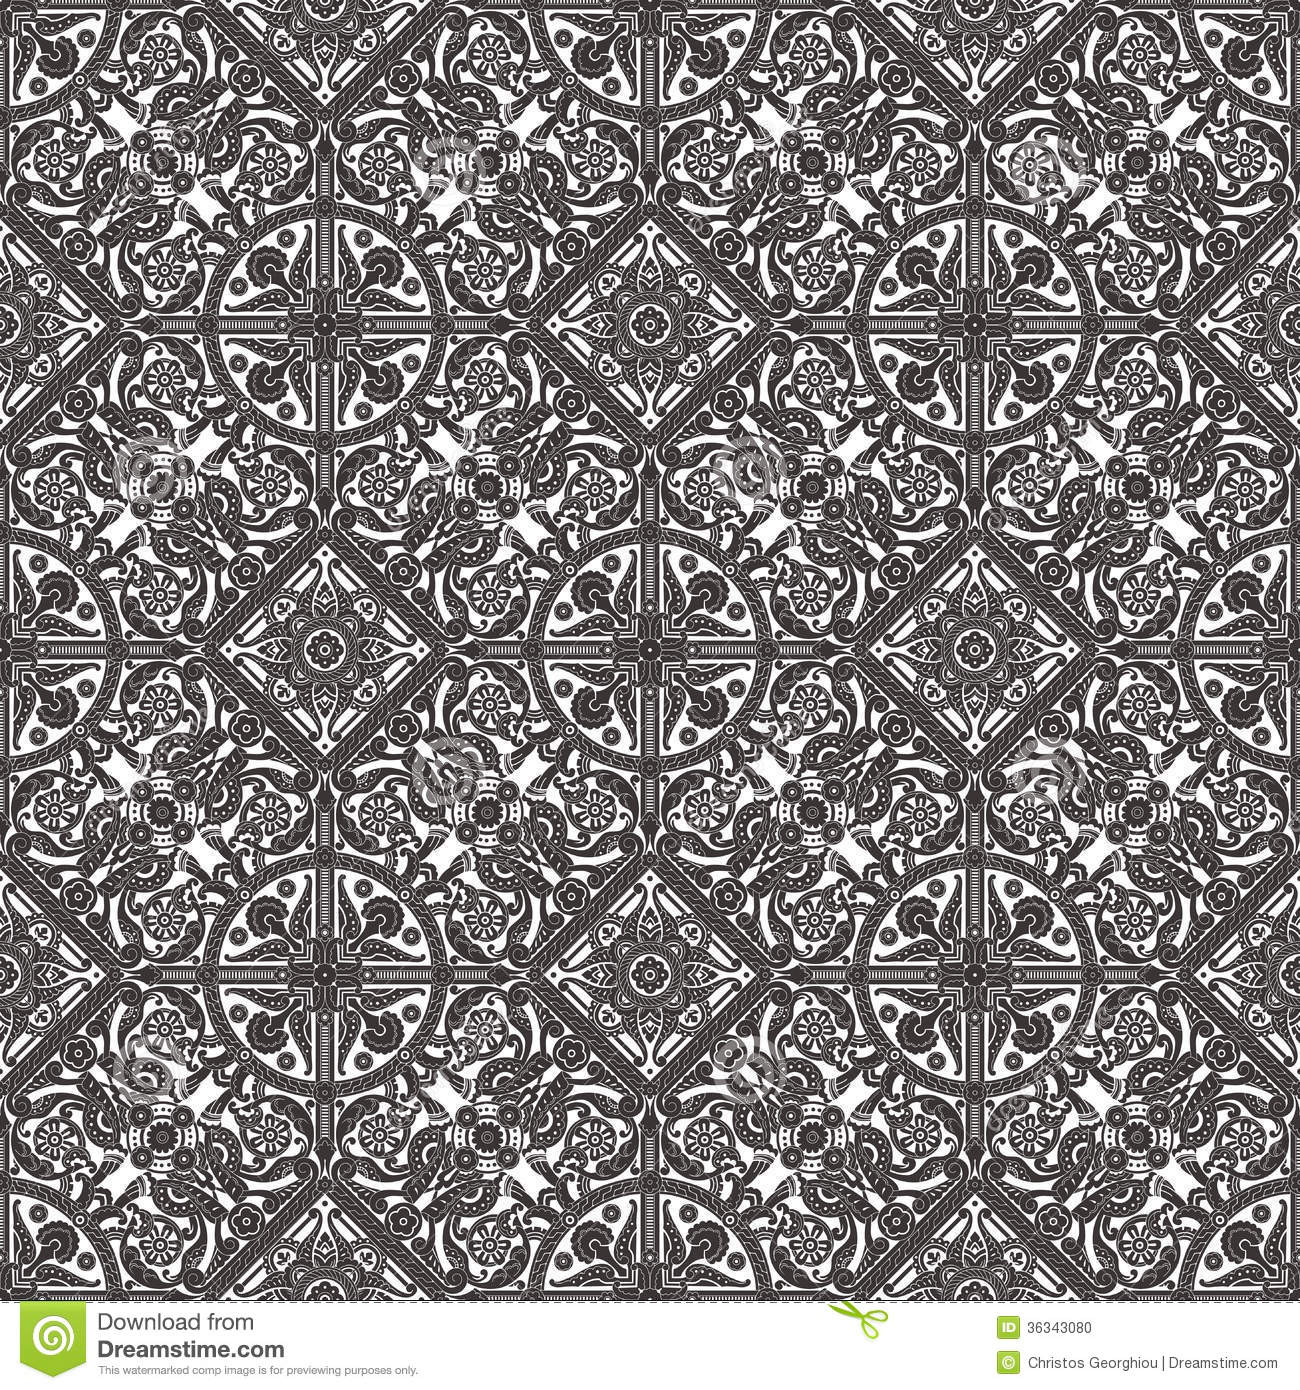 Moroccan geometric pattern royalty free stock photos image 13547078 - Moroccan Vintage Tile Background Royalty Free Stock Photo Image Vintage Middle Eastern Arabic Pattern Stock Photo Image 36343080